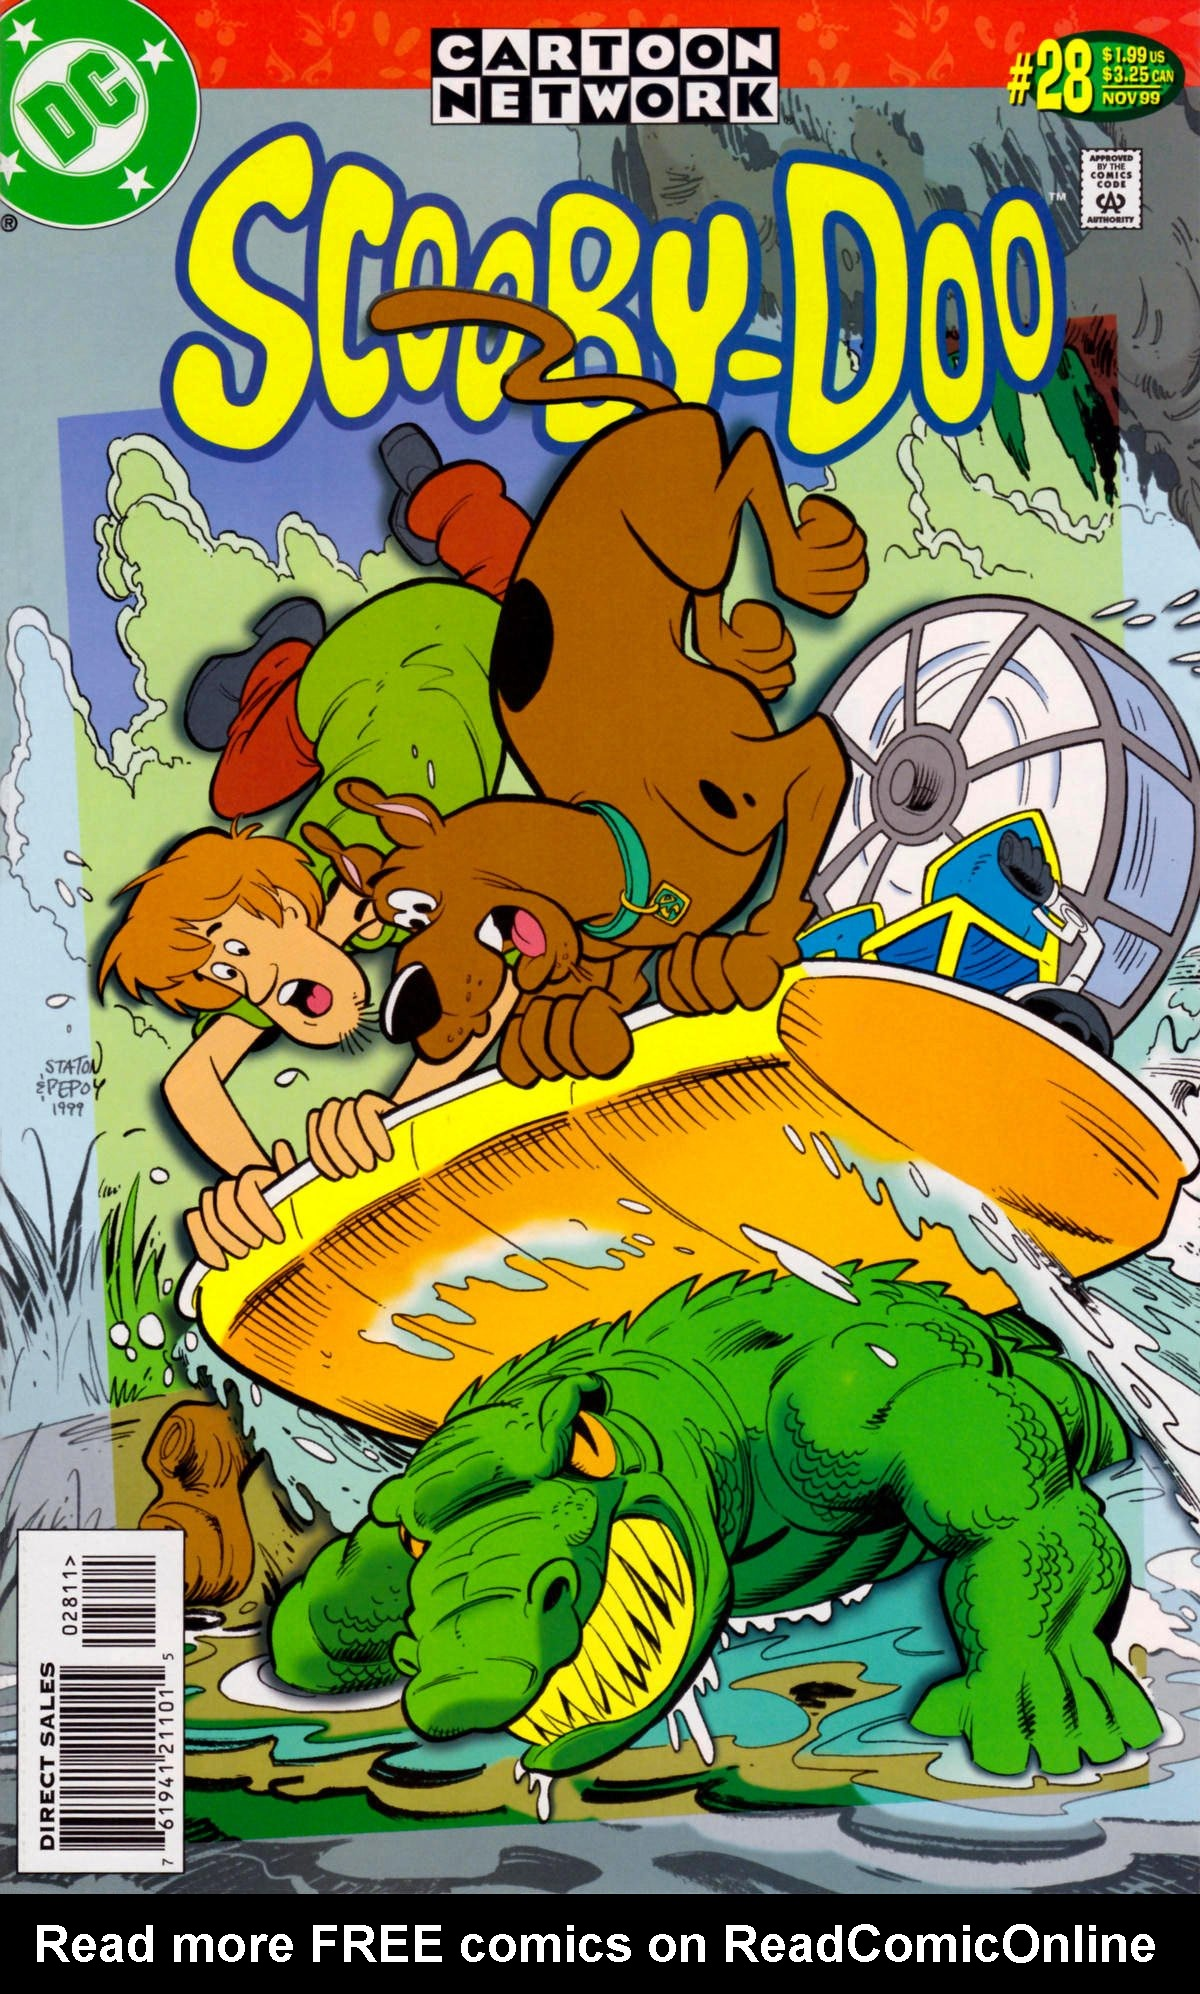 Read online Scooby-Doo (1997) comic -  Issue #28 - 1